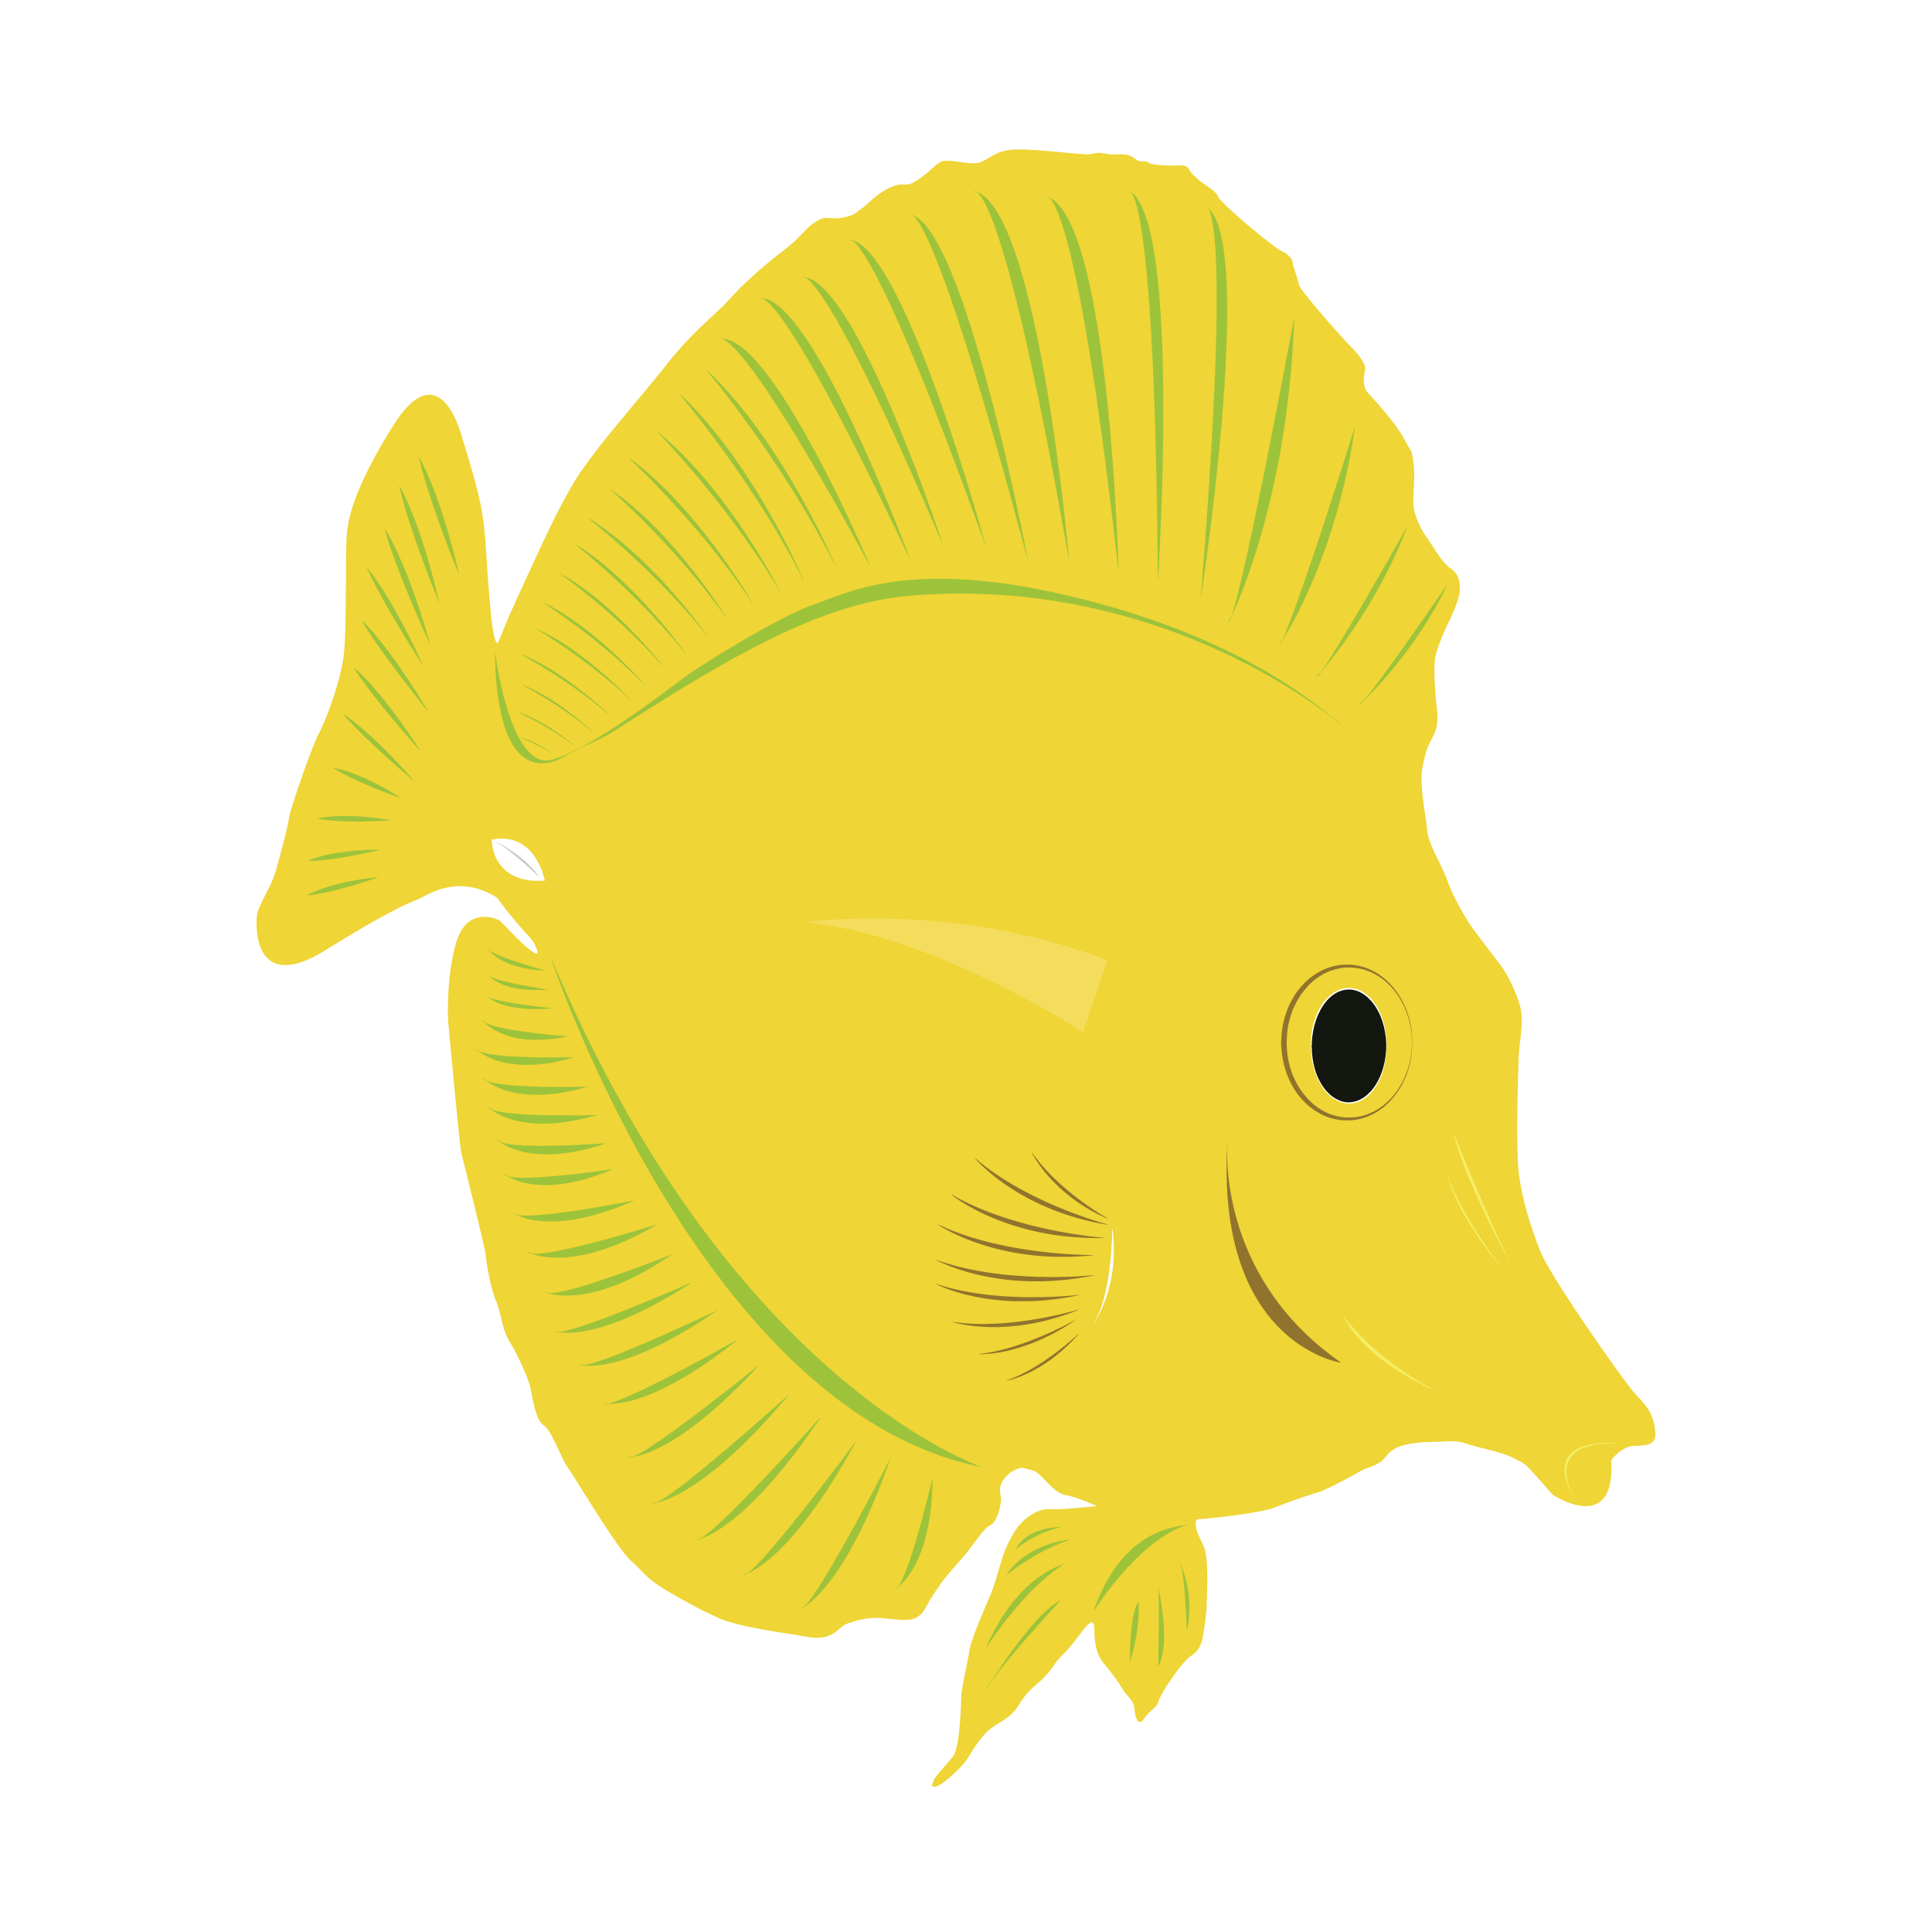 Blue tang fish clipart outline vector black and white download Yellow Tang Drawing at GetDrawings.com | Free for personal use ... vector black and white download